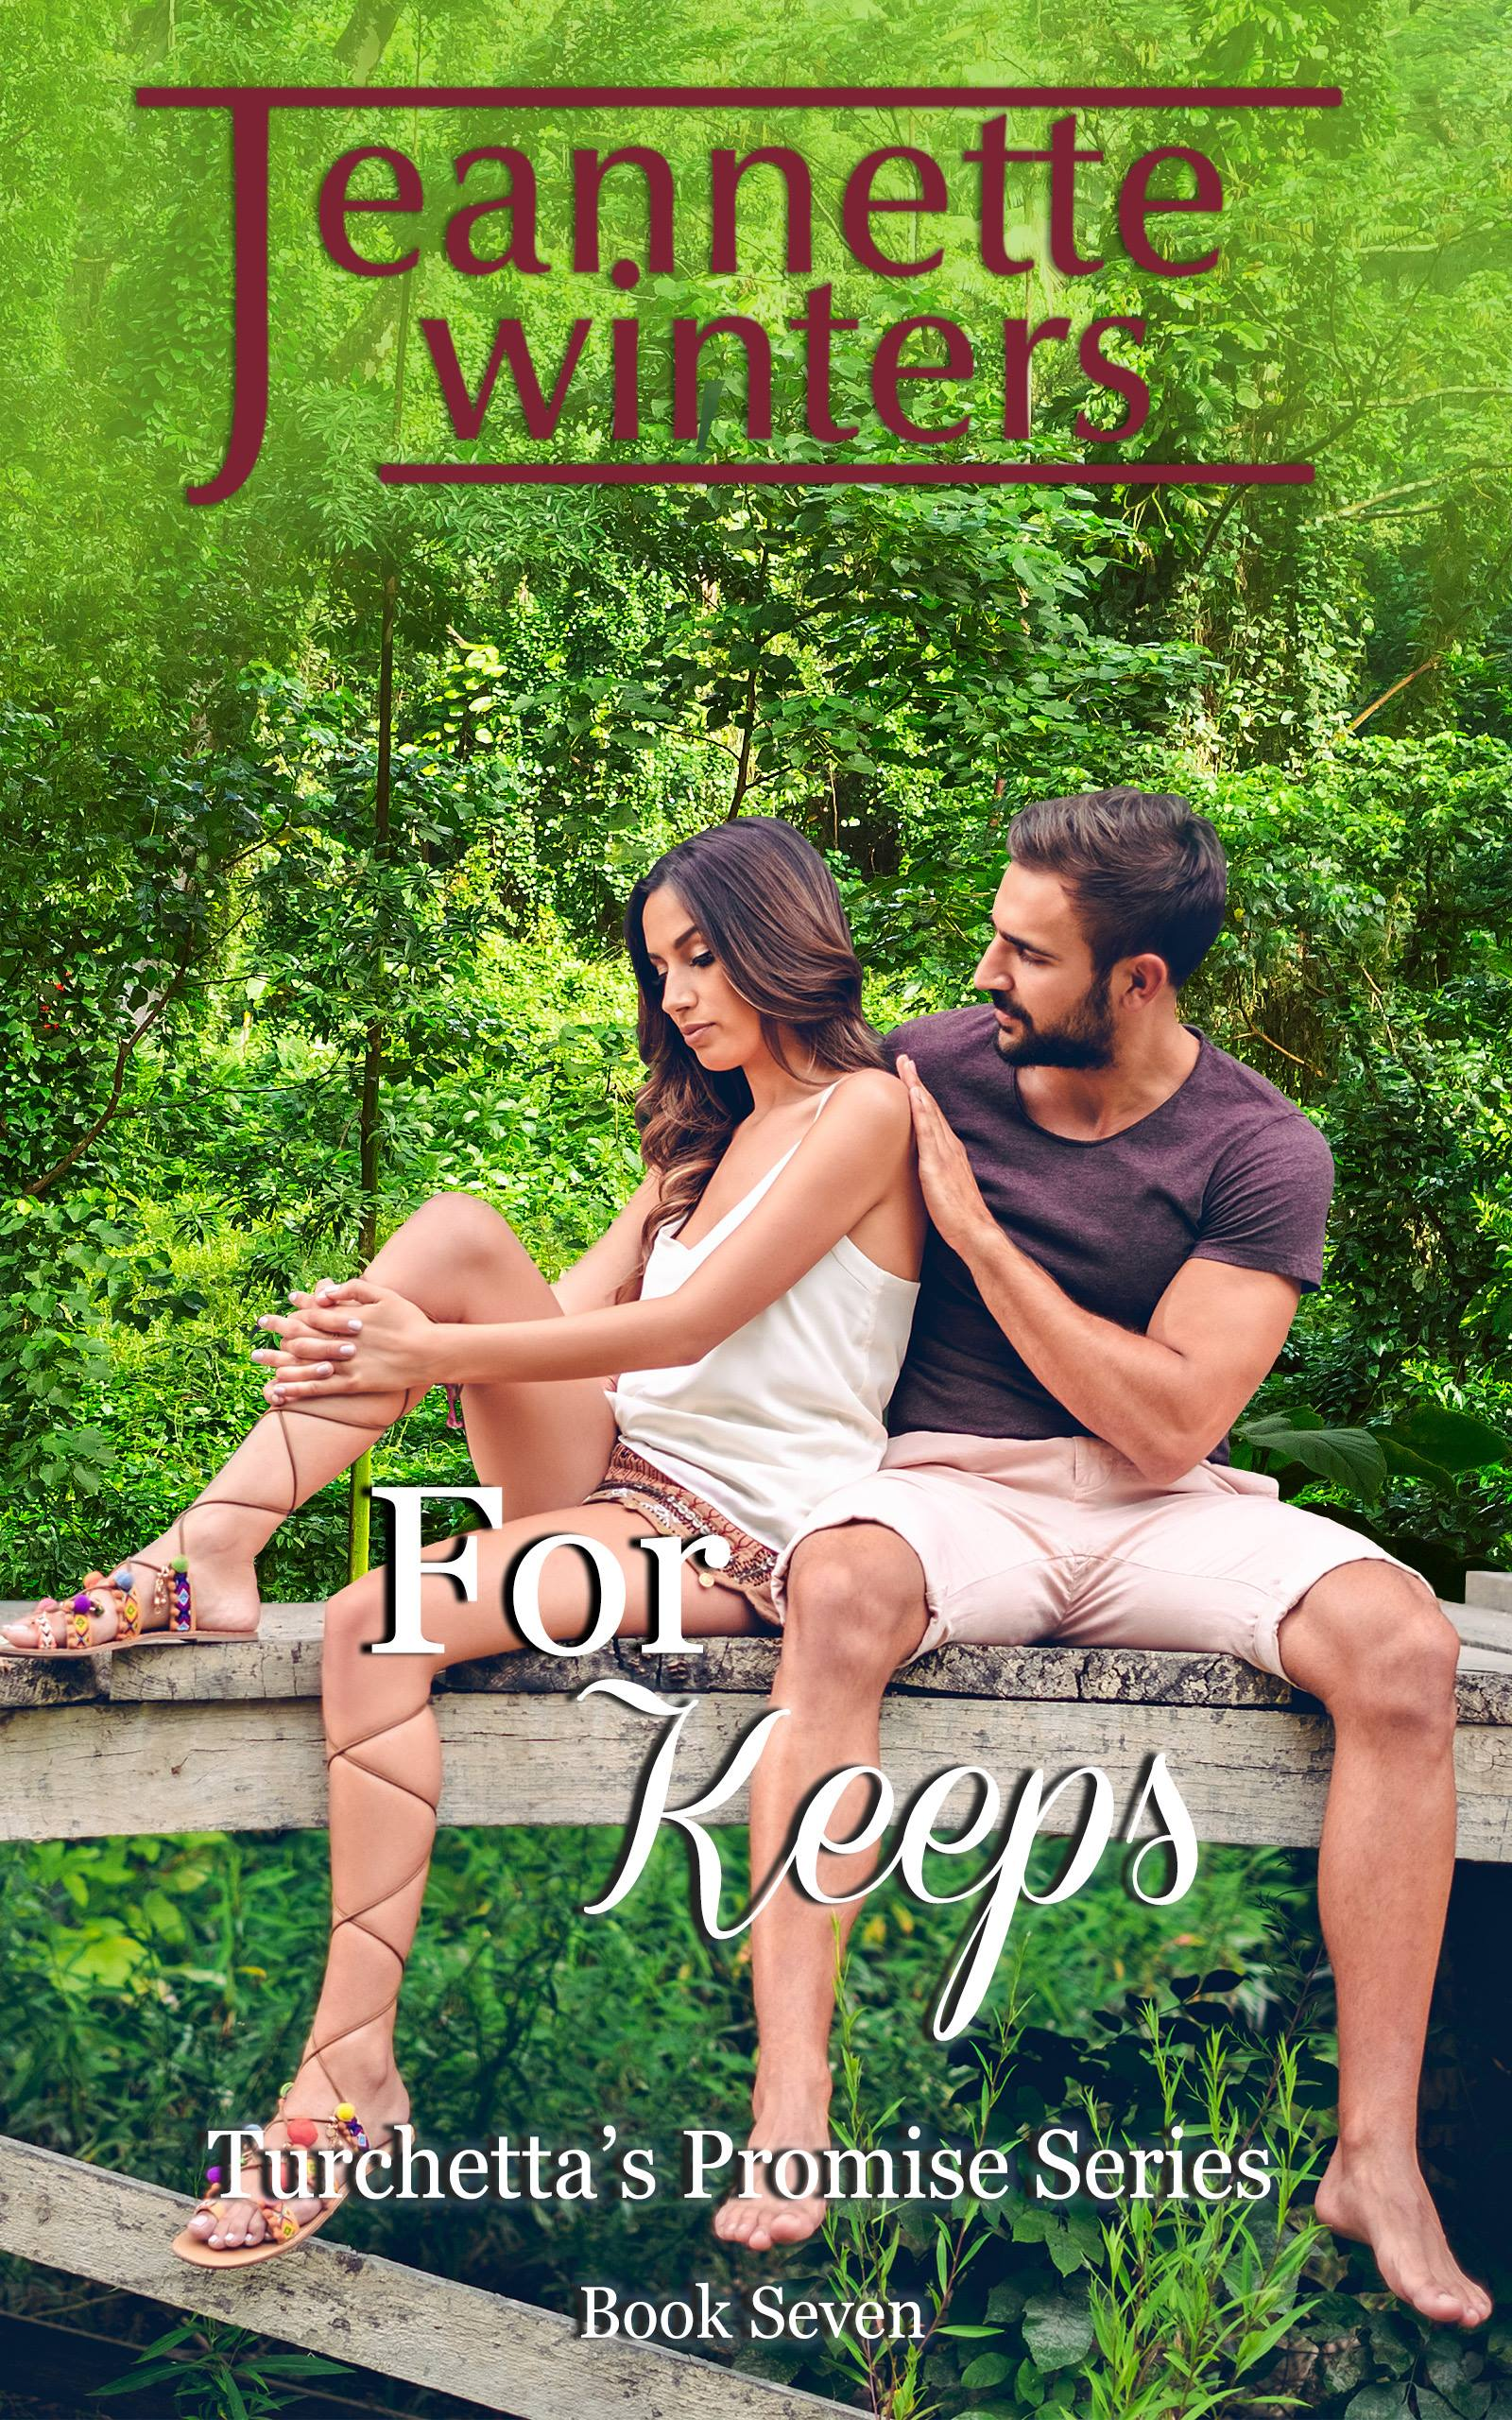 Lisa had spent years haunted by nightmares that she couldn't remember. As long as she remained secluded on the island, she felt safe, and that's all that matter to her.  Jett was between assignments. He needed one thing right now and that was time alone. His uncle calls in a favor and Jett's vacation comes to a halt.  When their paths cross, there's more than chemistry in the air. He finds her mysterious, and his specialty is uncovering secrets. But nothing seems as it appears and soon he finds himself caught in the middle of the lie.  He's never backed down from a challenge before. Pushing for the truth might be the right thing to do, but will the price be her life? There are some things that should remain buried. Is his love for her one of them or will it be what saves them both?